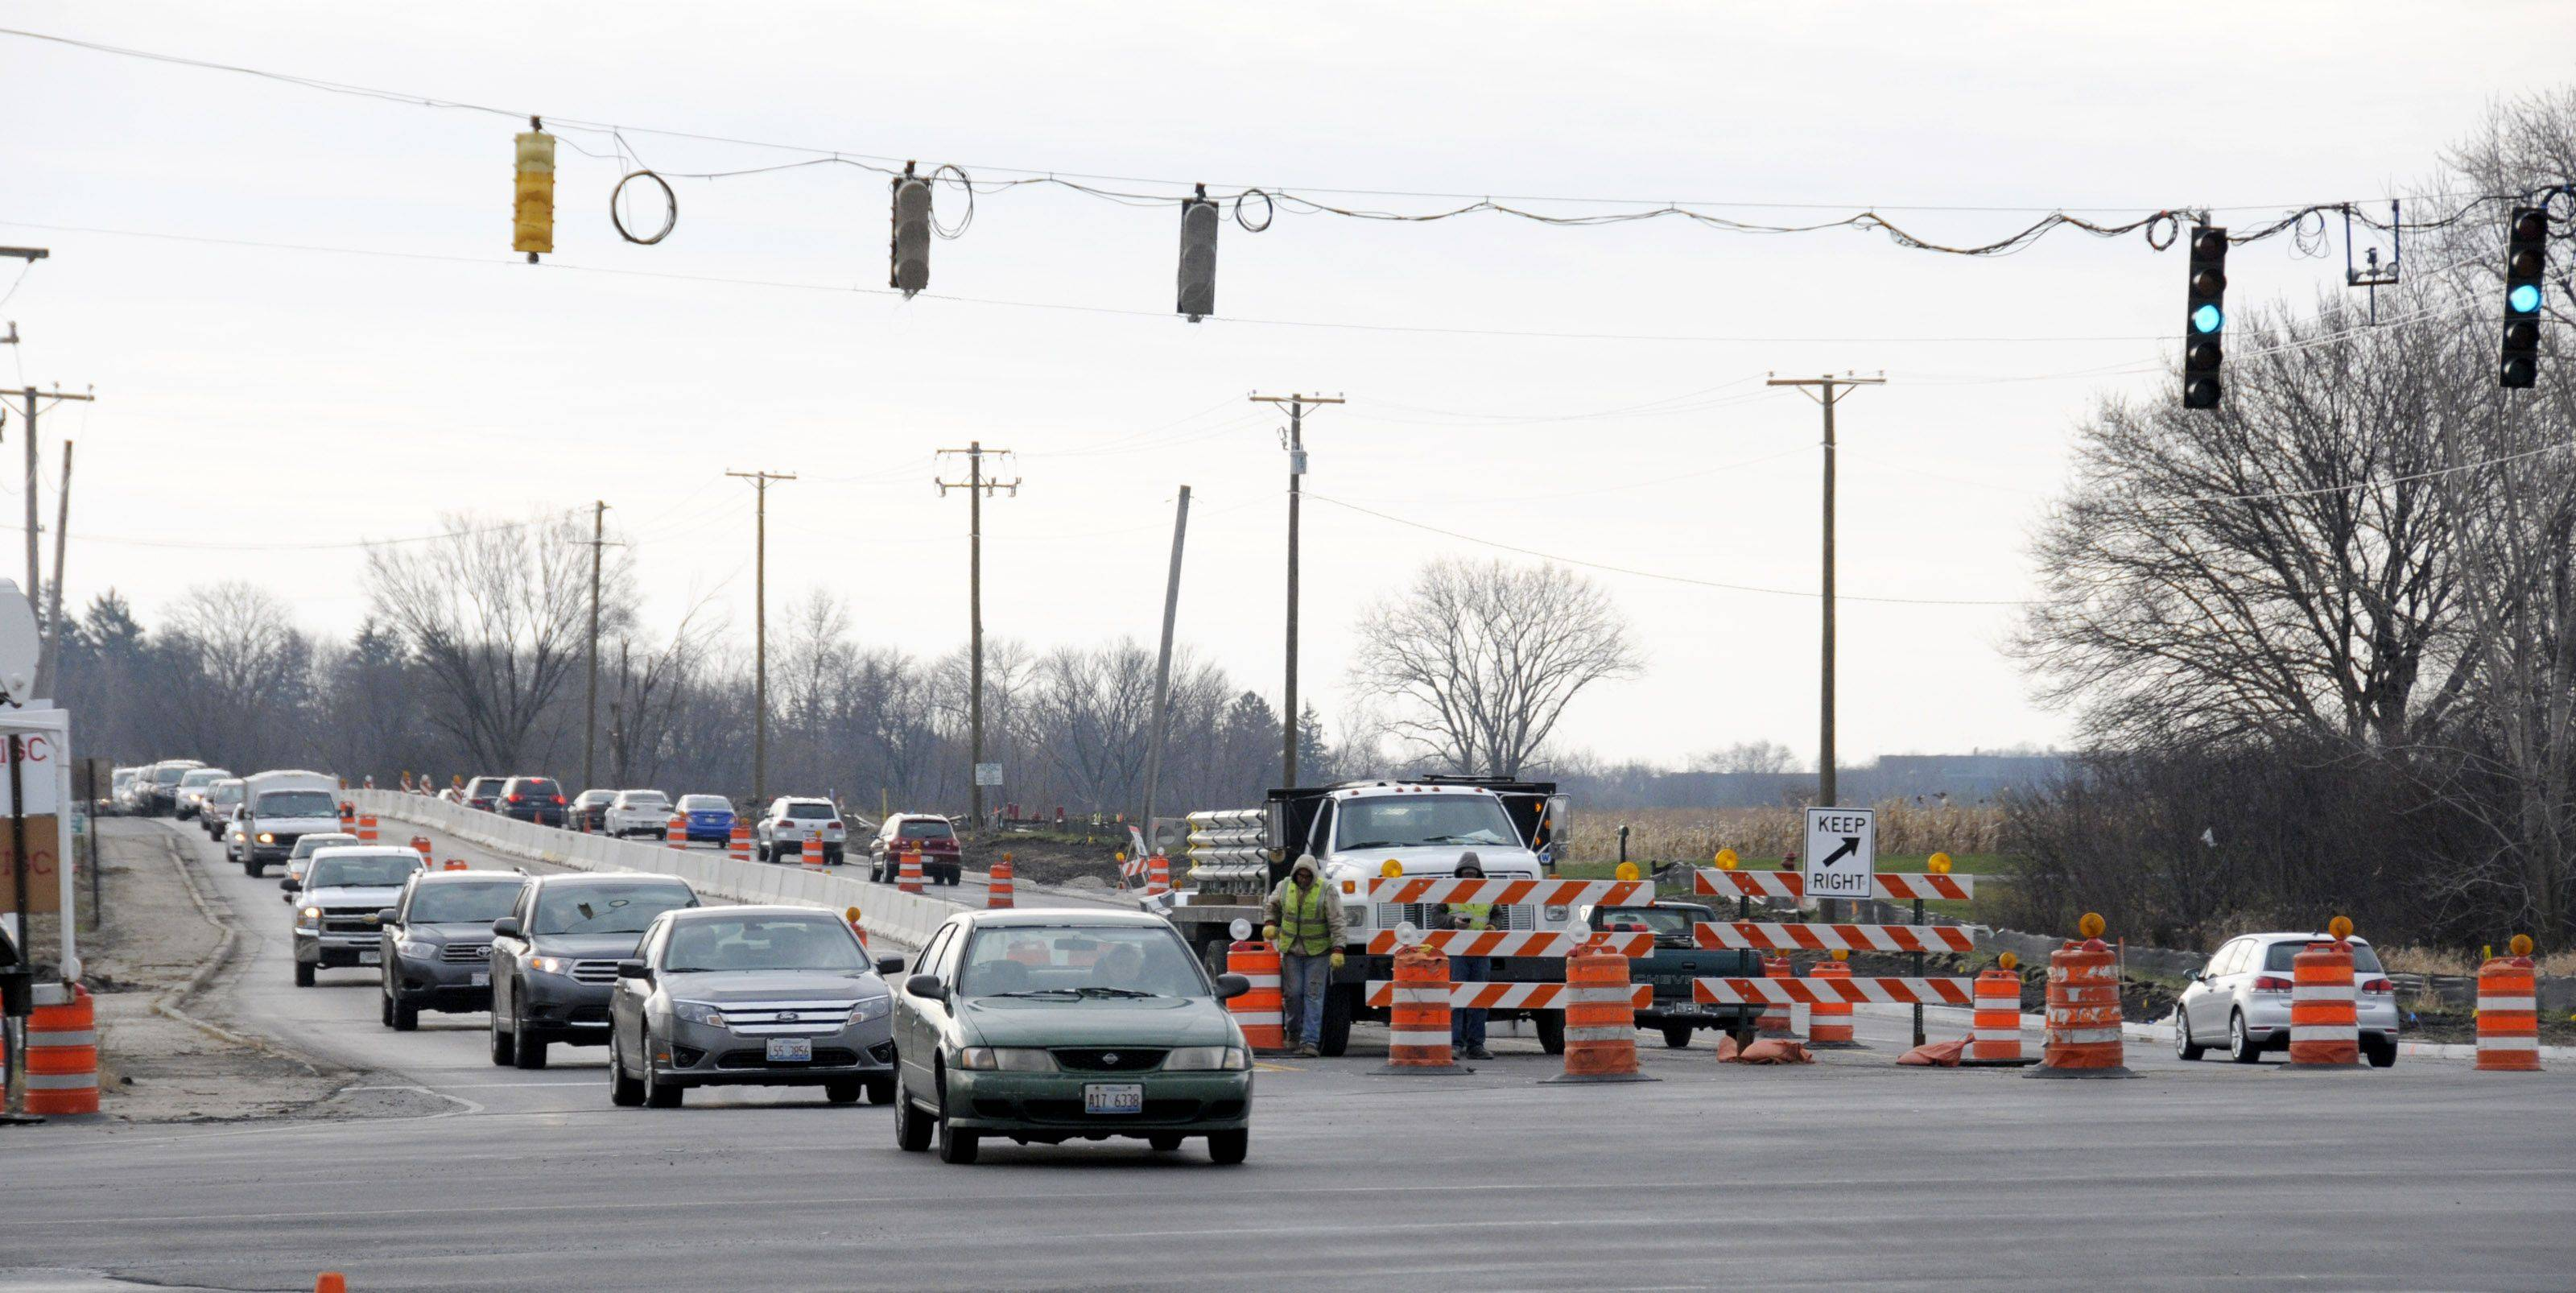 Drivers on Naperville Road in Wheaton funnel into a single lane in both directions Thursday at the intersection with Butterfield Road. Two lanes in each direction will be open by the time the project stops for the winter season at the end of today.